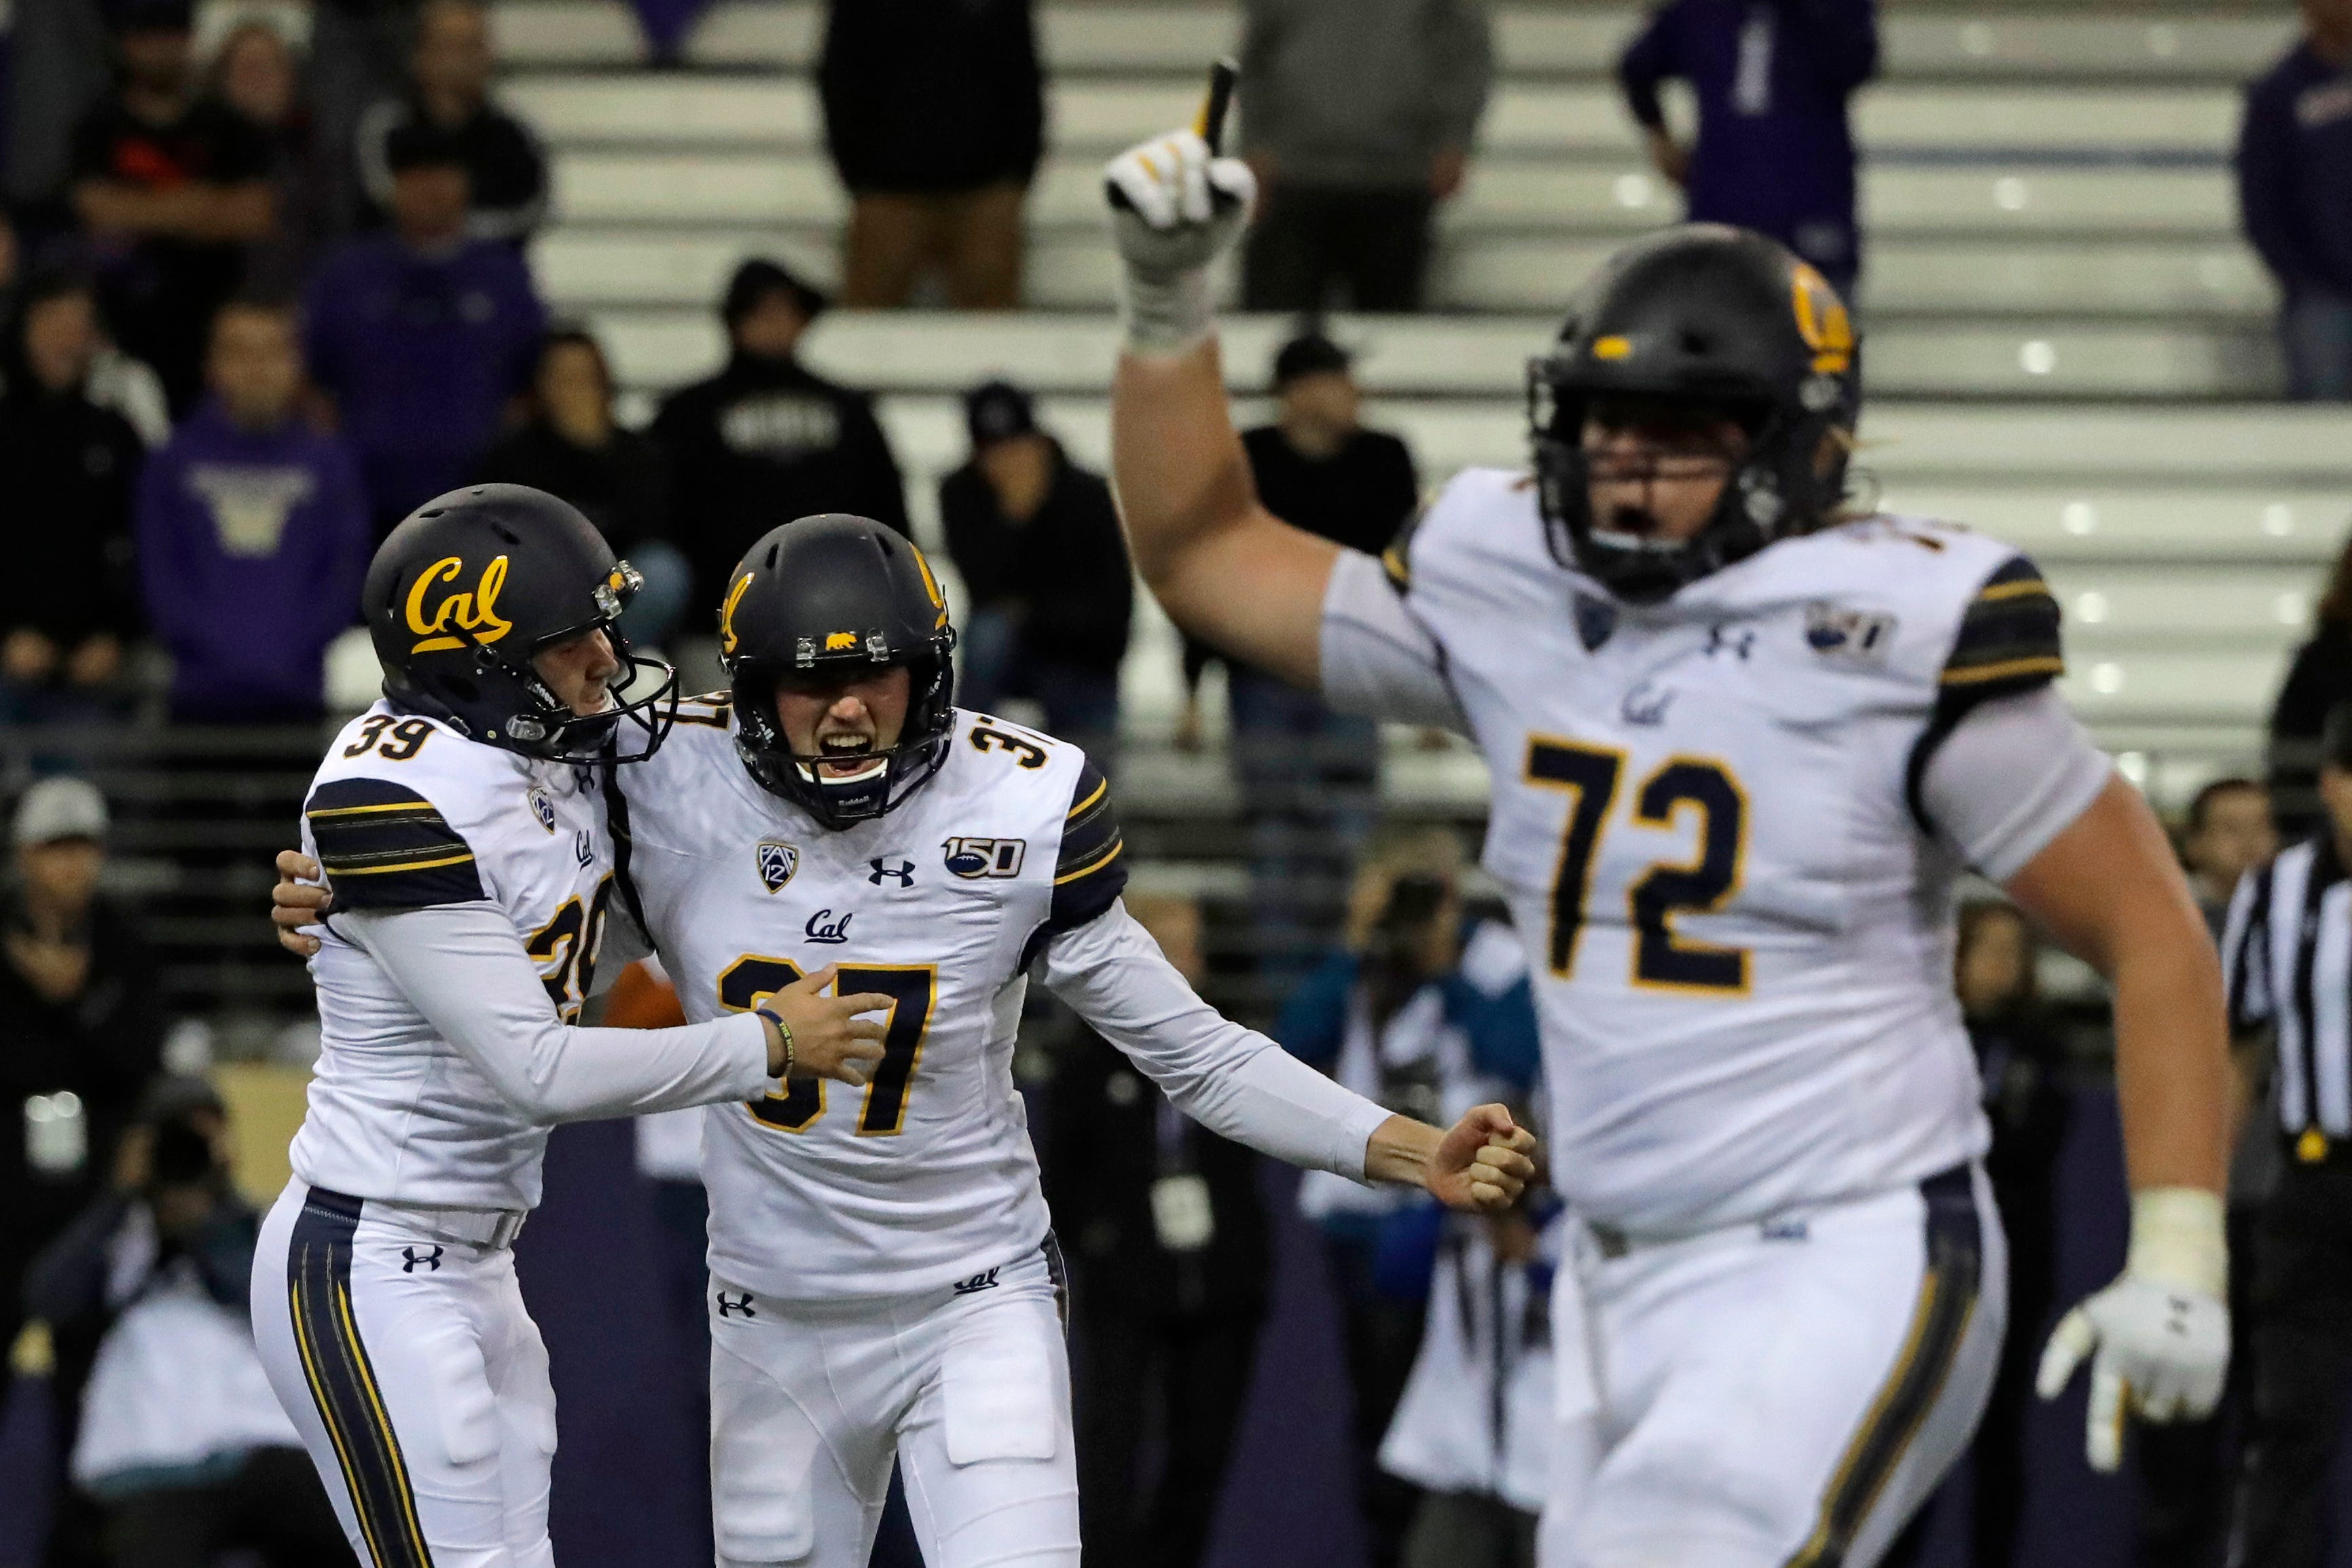 College football: California pulls off stunner, beats Washington